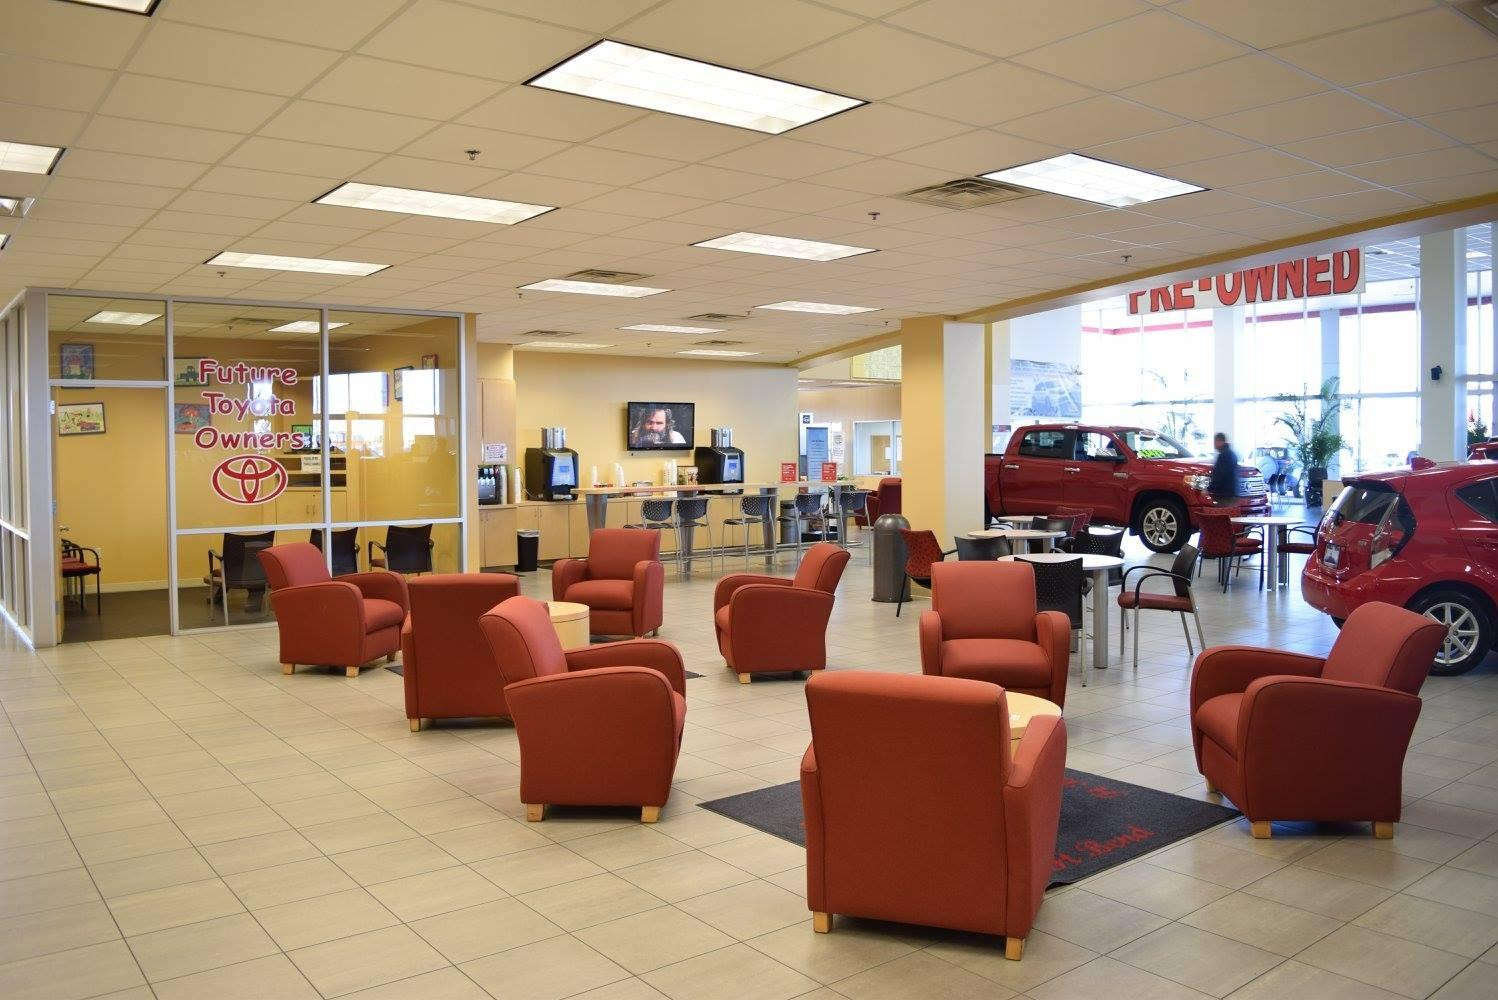 fort bend toyota coupons near me in richmond 8coupons. Black Bedroom Furniture Sets. Home Design Ideas